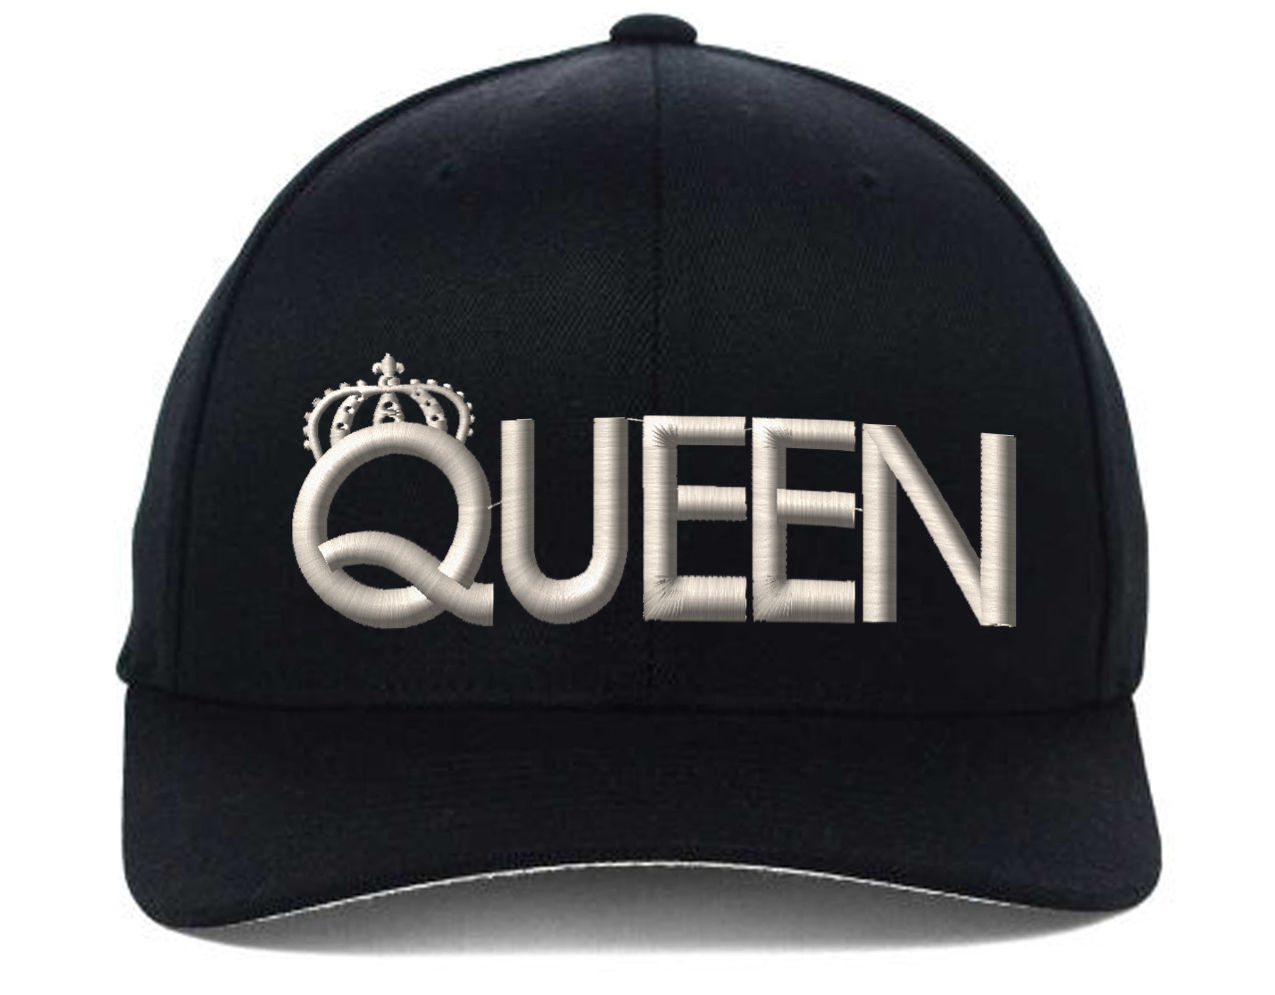 QUEEN Flexfit Hat, Black & White Thread, Fine Finished Embroidery